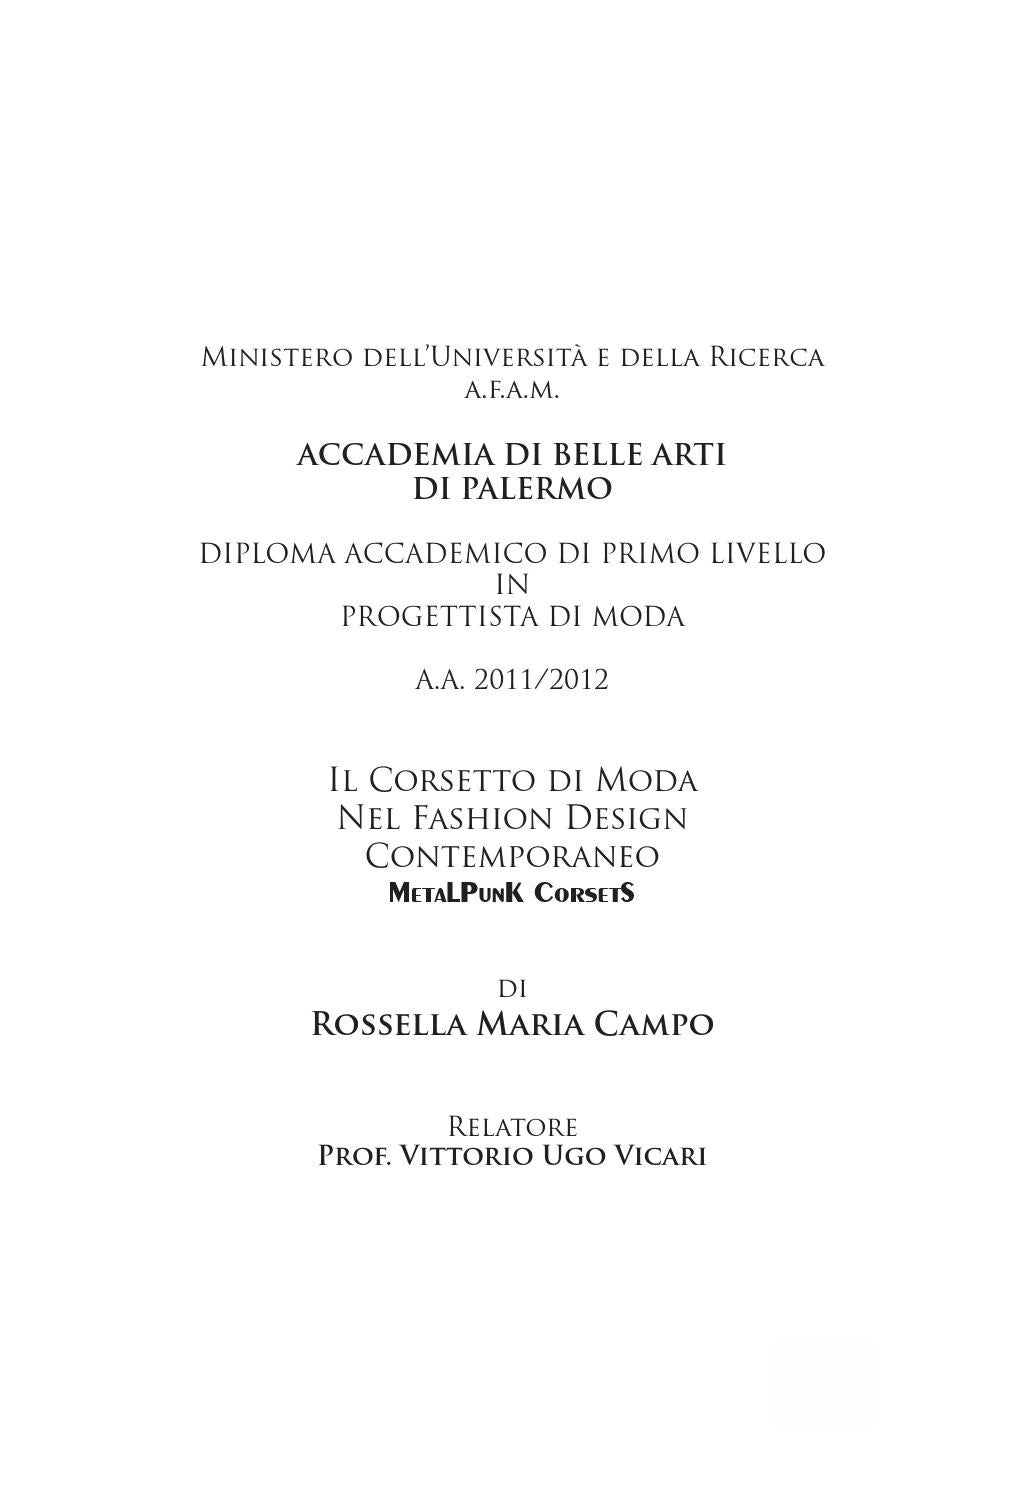 Tesi by Rossella Campo - issuu 0101d29ca94